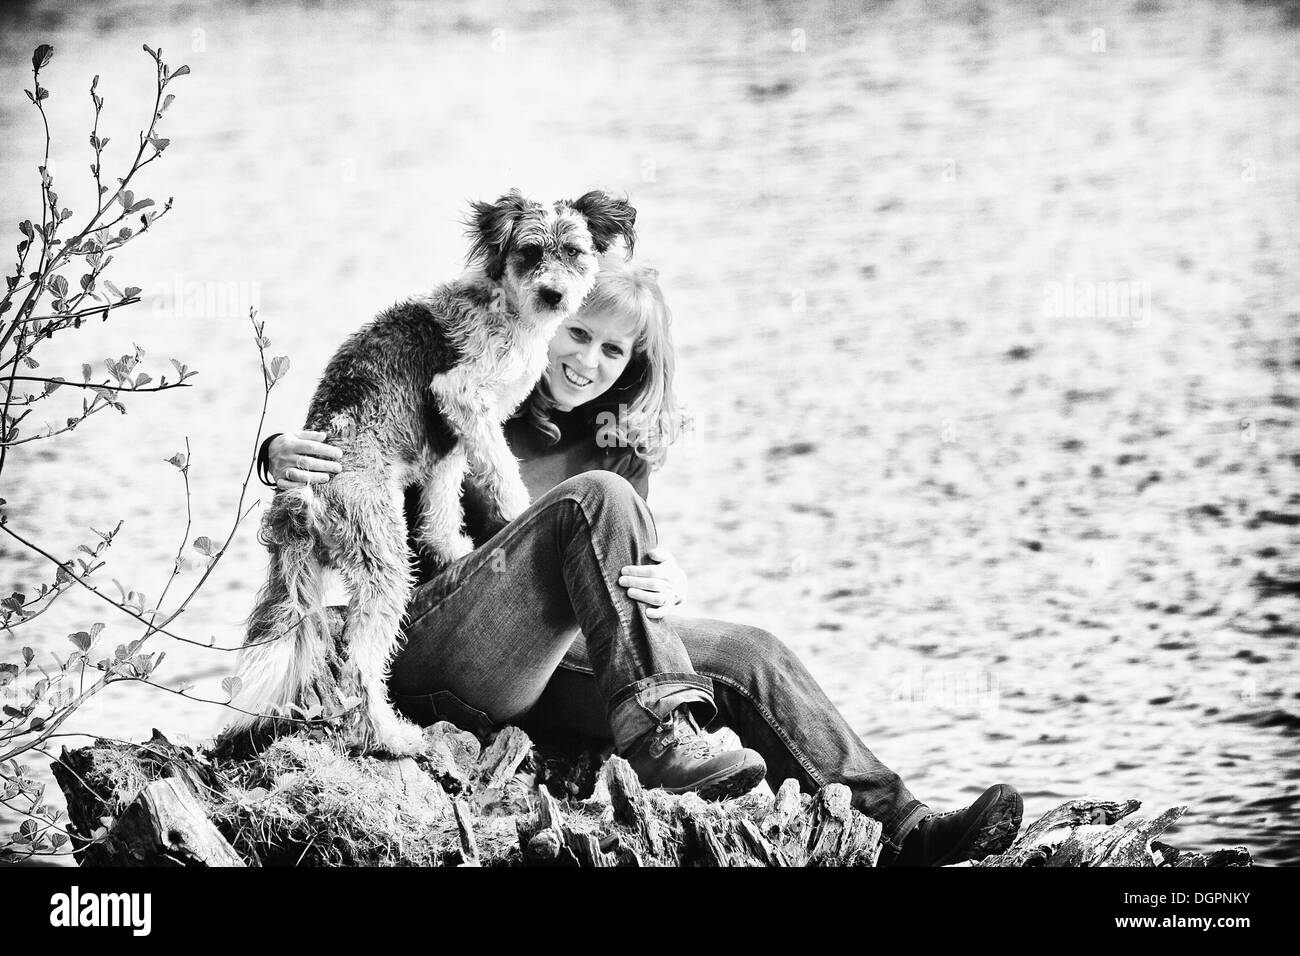 Woman sitting with her dog on a rock by a lake Stock Photo